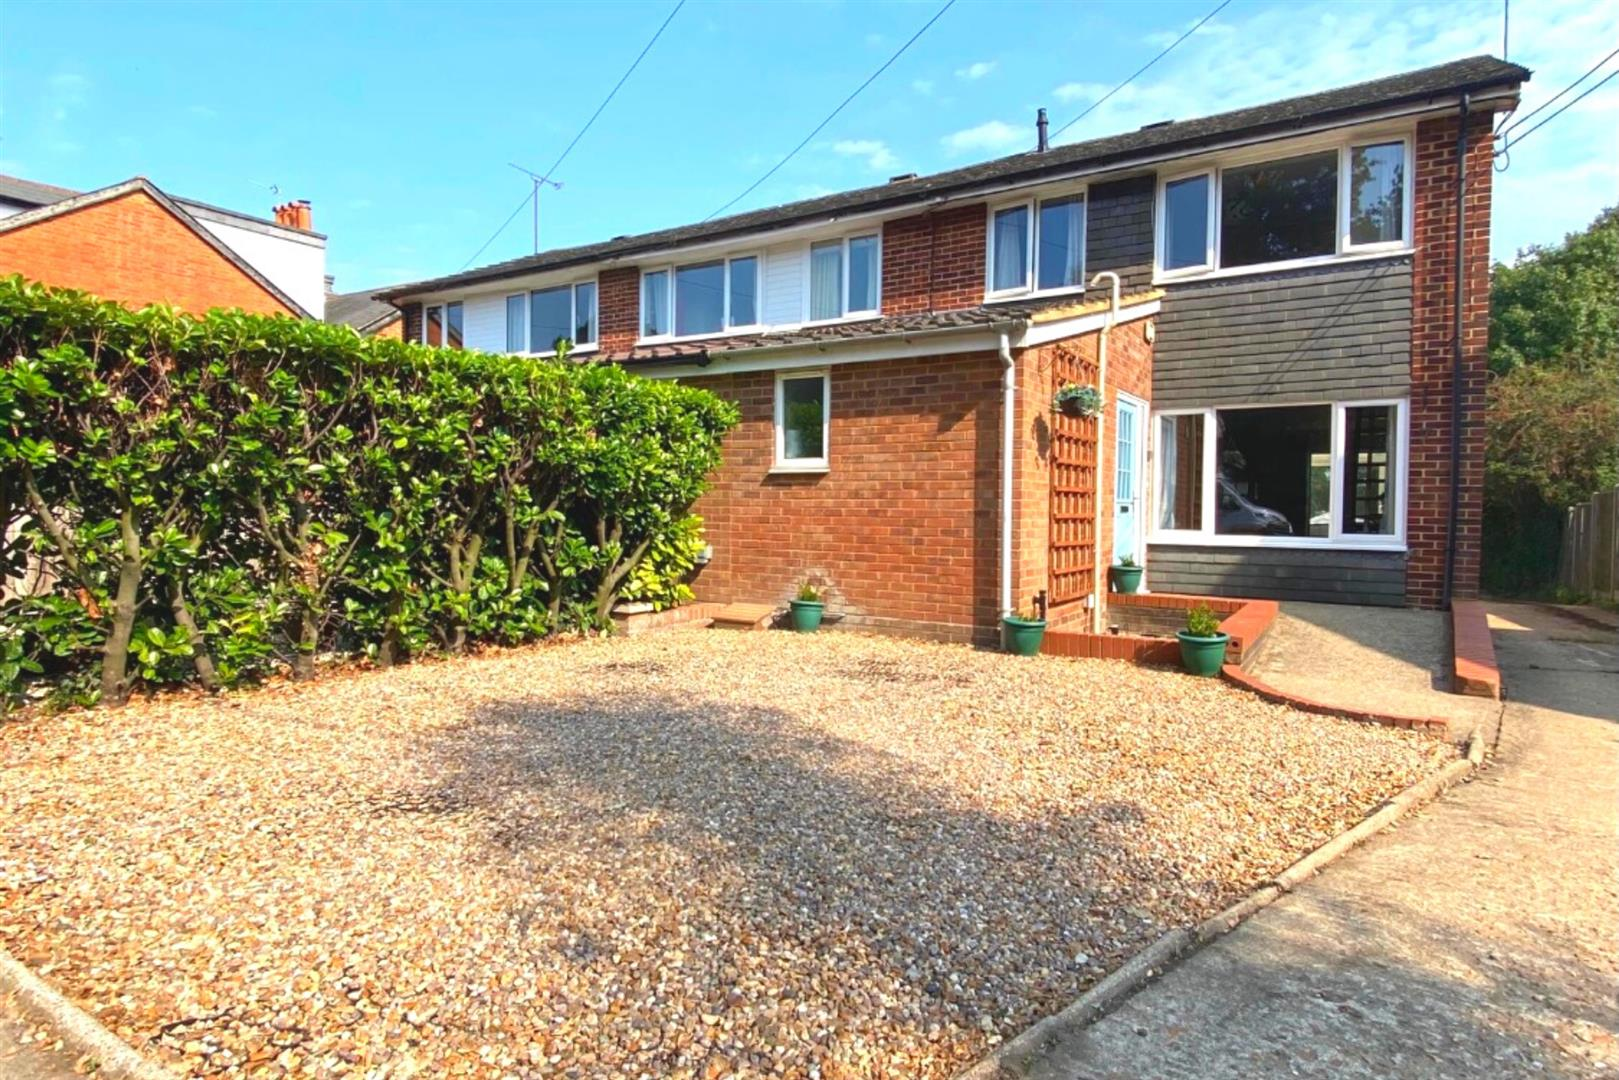 3 bed end of terrace for sale in Arborfield Cross 1